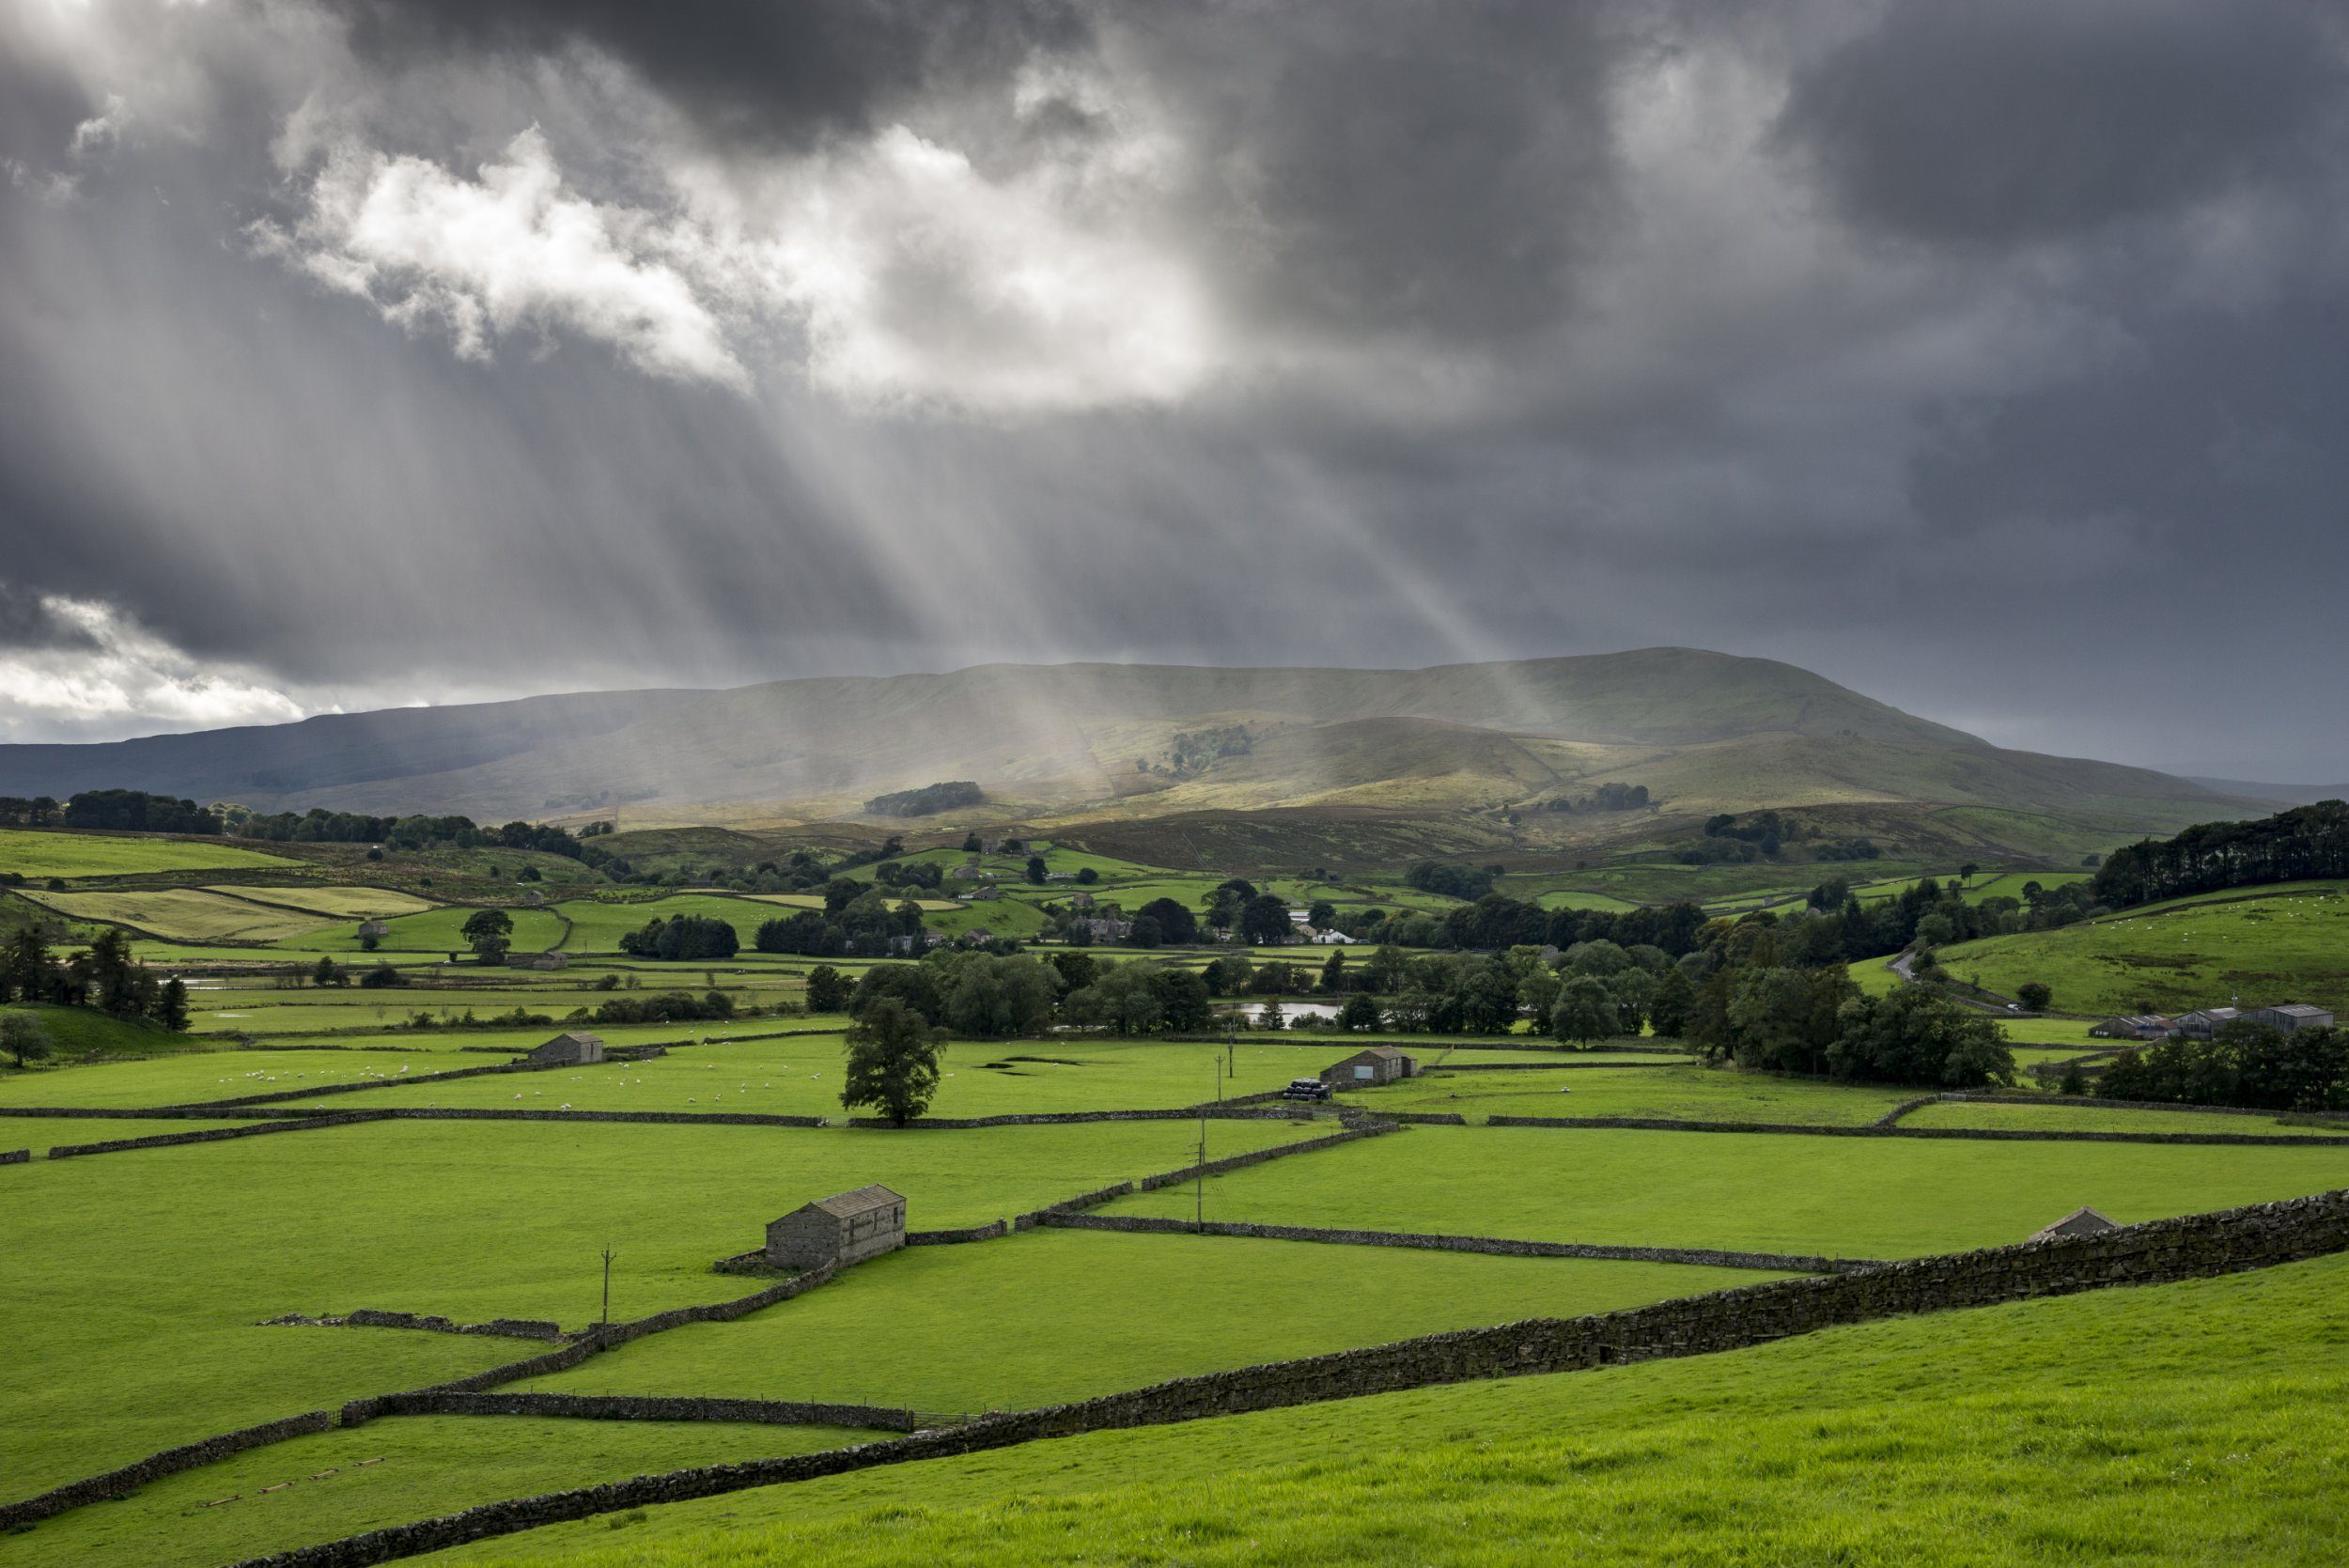 A dramatic day of changeable weather in the Yorkshire Dales in September. Sunbeams and heavy rain over green fields near Hawes.